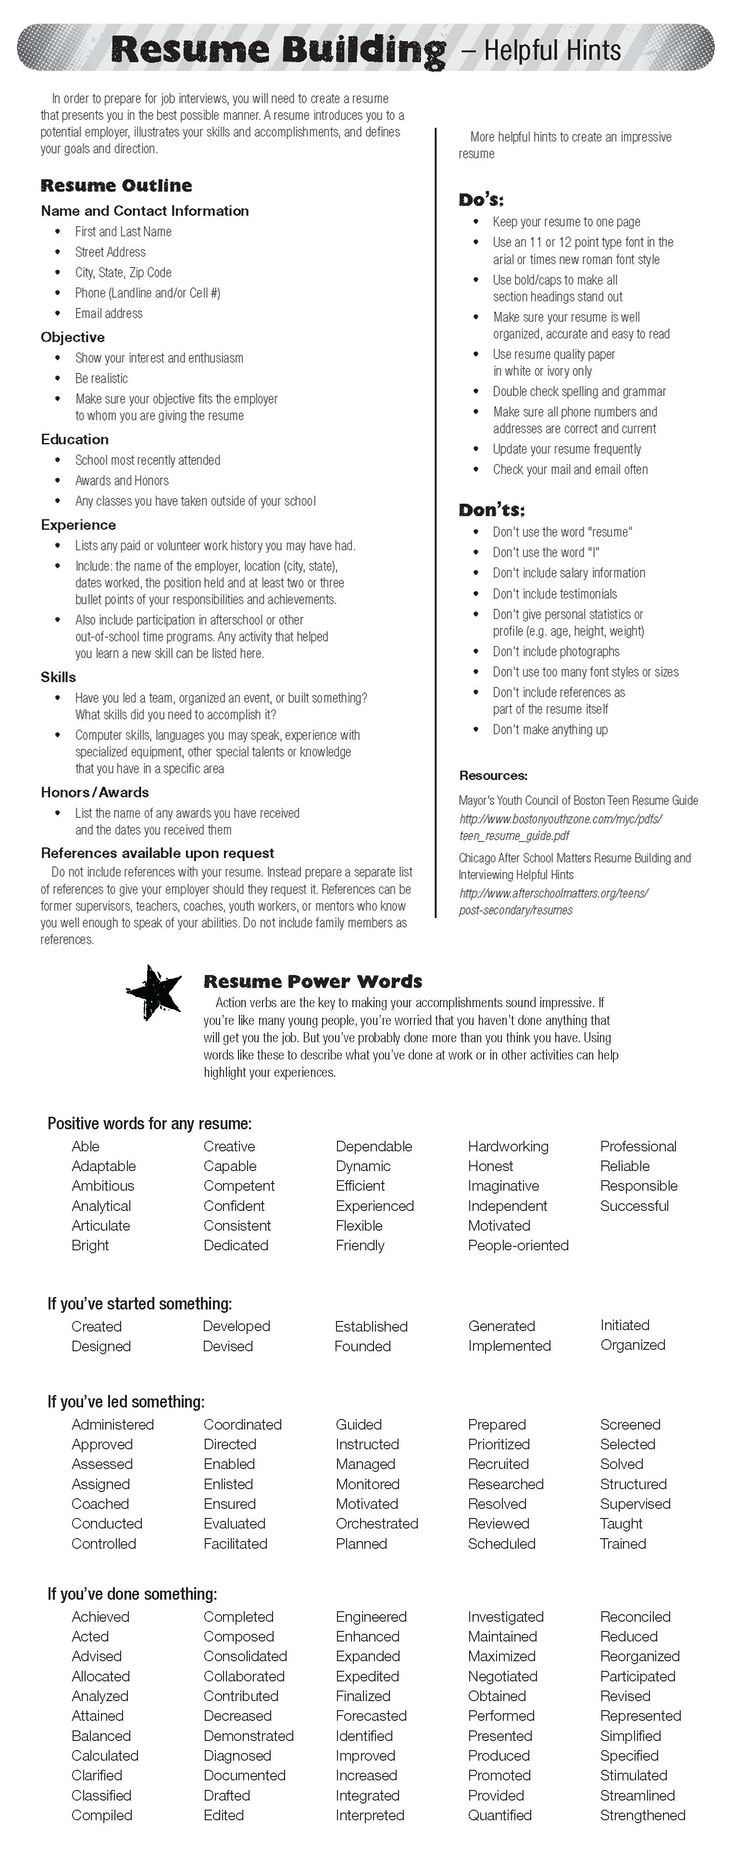 Opposenewapstandardsus  Winsome  Ideas About Resume On Pinterest  Cv Format Resume Cv And  With Interesting  Ideas About Resume On Pinterest  Cv Format Resume Cv And Resume Templates With Charming Entry Level Project Manager Resume Also Skills On Resume Examples In Addition Host Resume And Hotel Manager Resume As Well As Sales Engineer Resume Additionally College Student Resume Example From Pinterestcom With Opposenewapstandardsus  Interesting  Ideas About Resume On Pinterest  Cv Format Resume Cv And  With Charming  Ideas About Resume On Pinterest  Cv Format Resume Cv And Resume Templates And Winsome Entry Level Project Manager Resume Also Skills On Resume Examples In Addition Host Resume From Pinterestcom